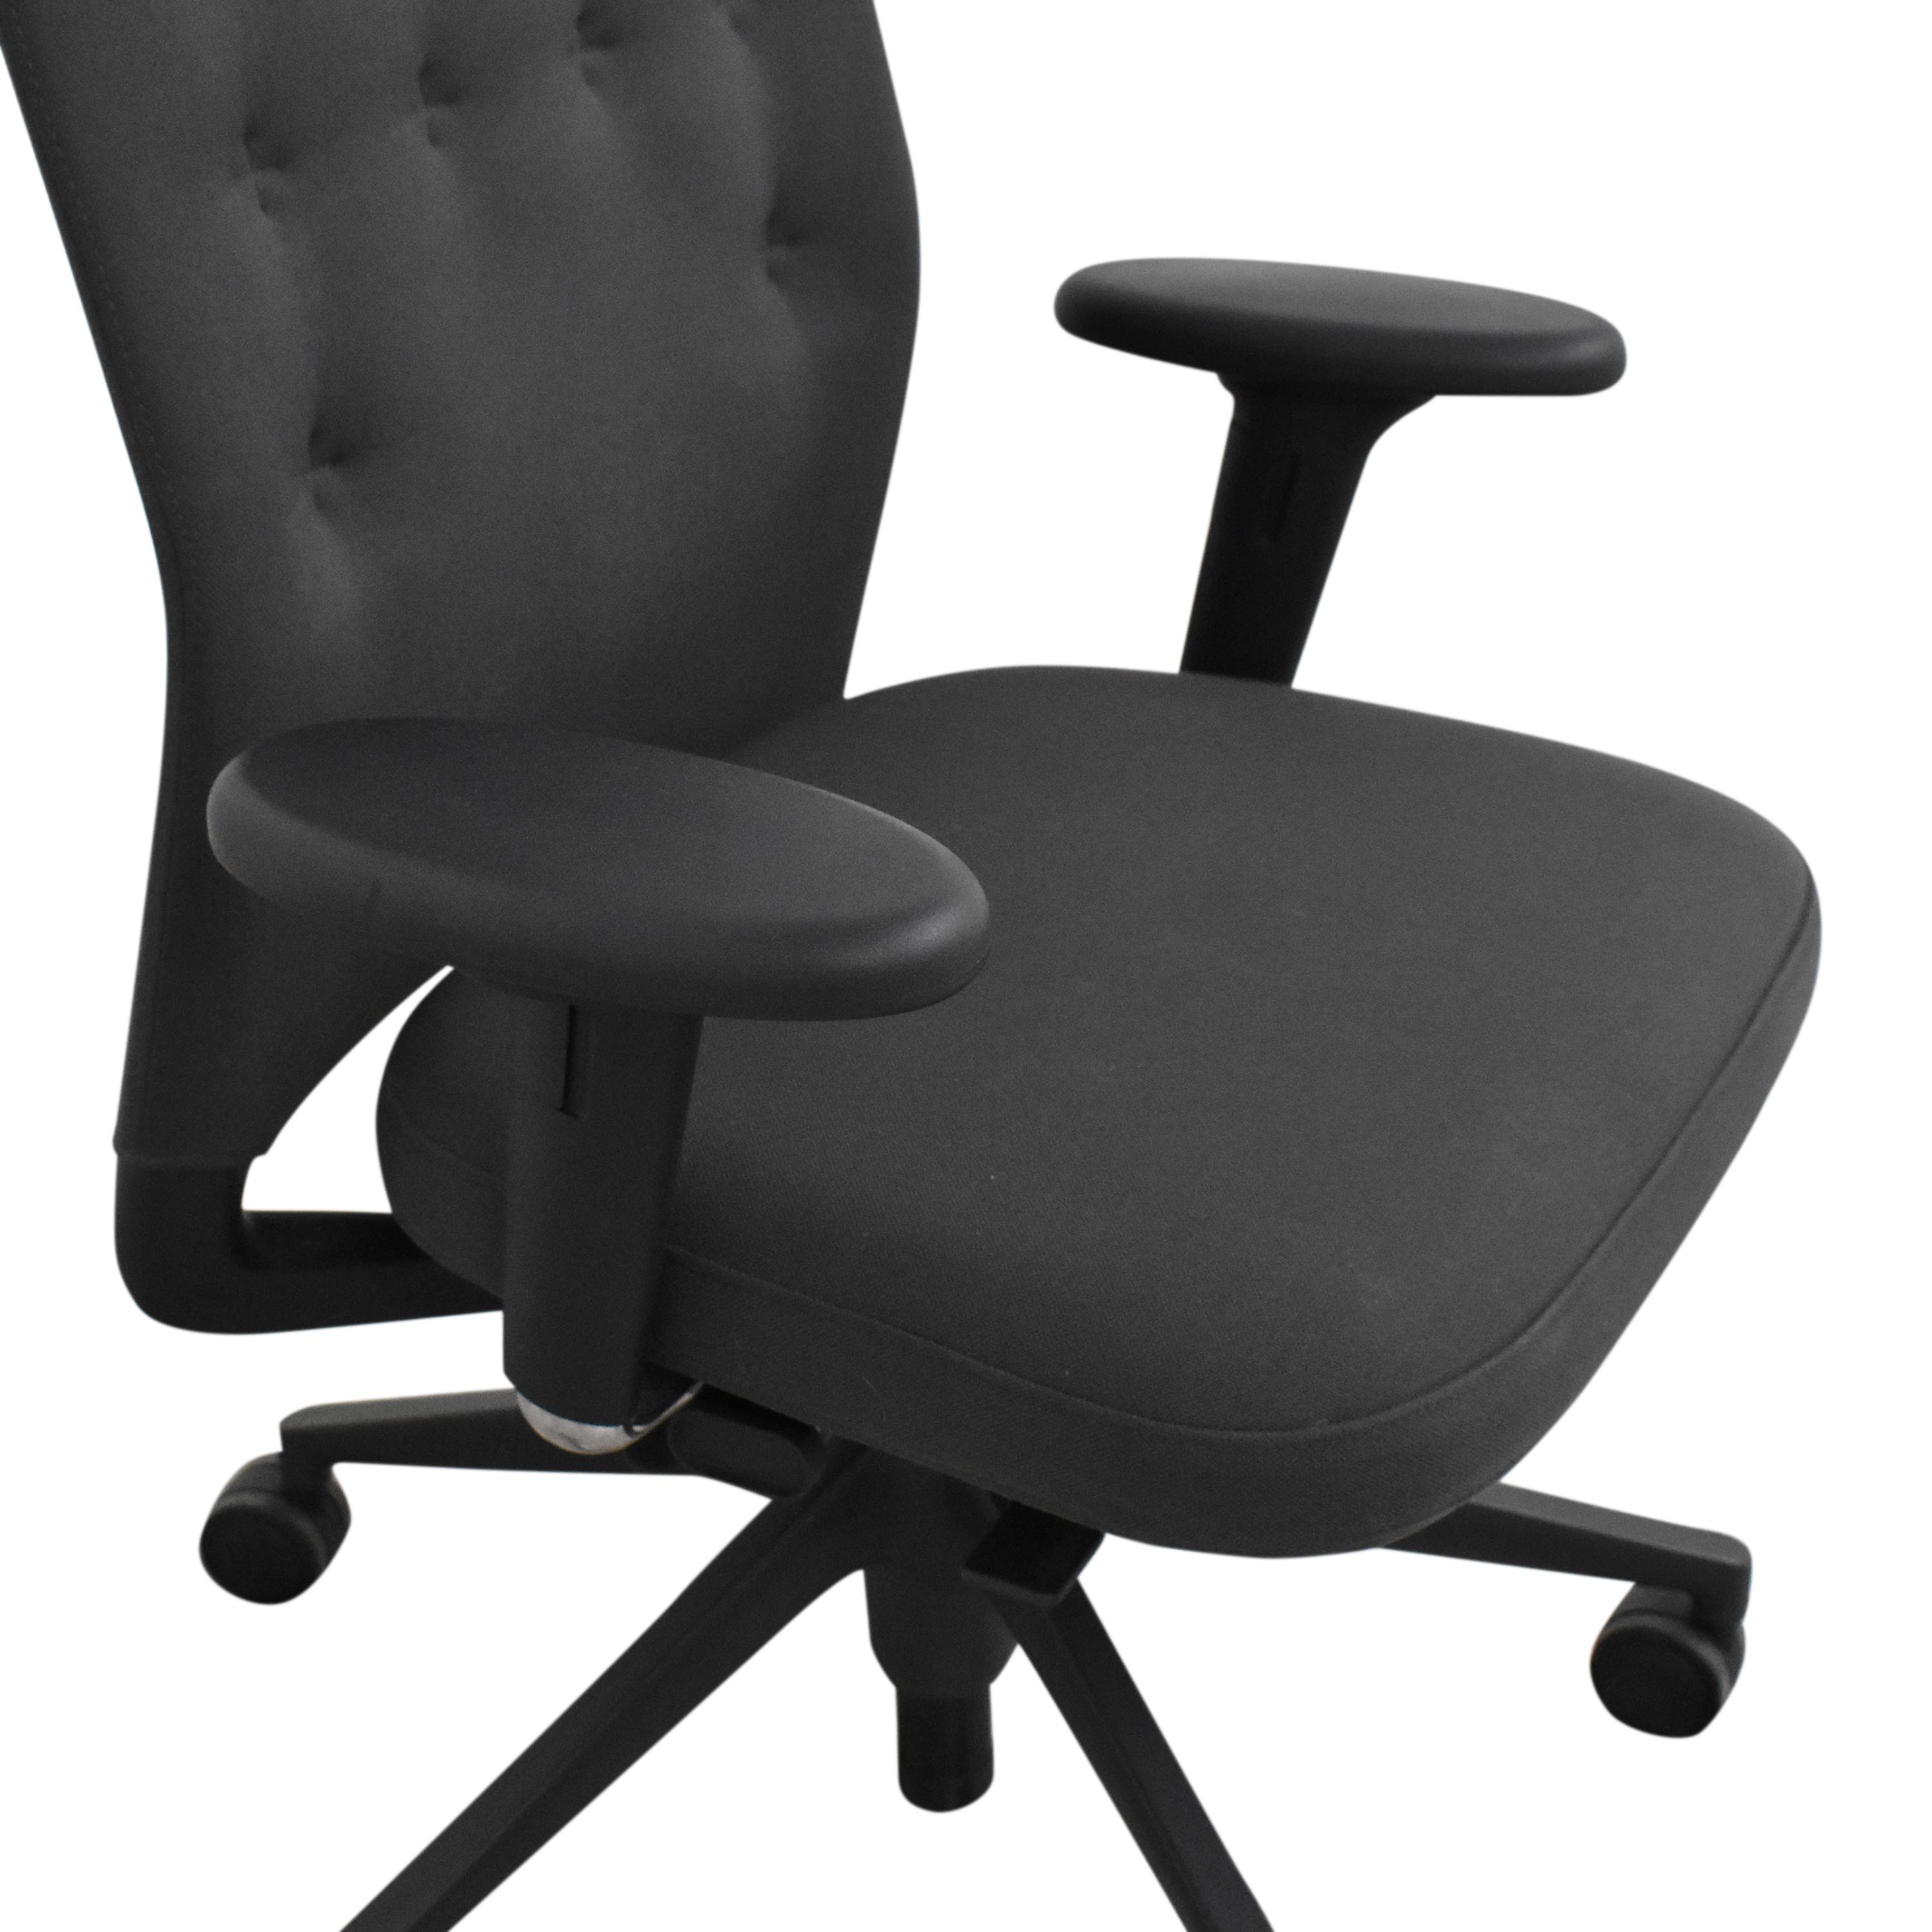 Vitra Vitra ID Trim Office Chair dimensions